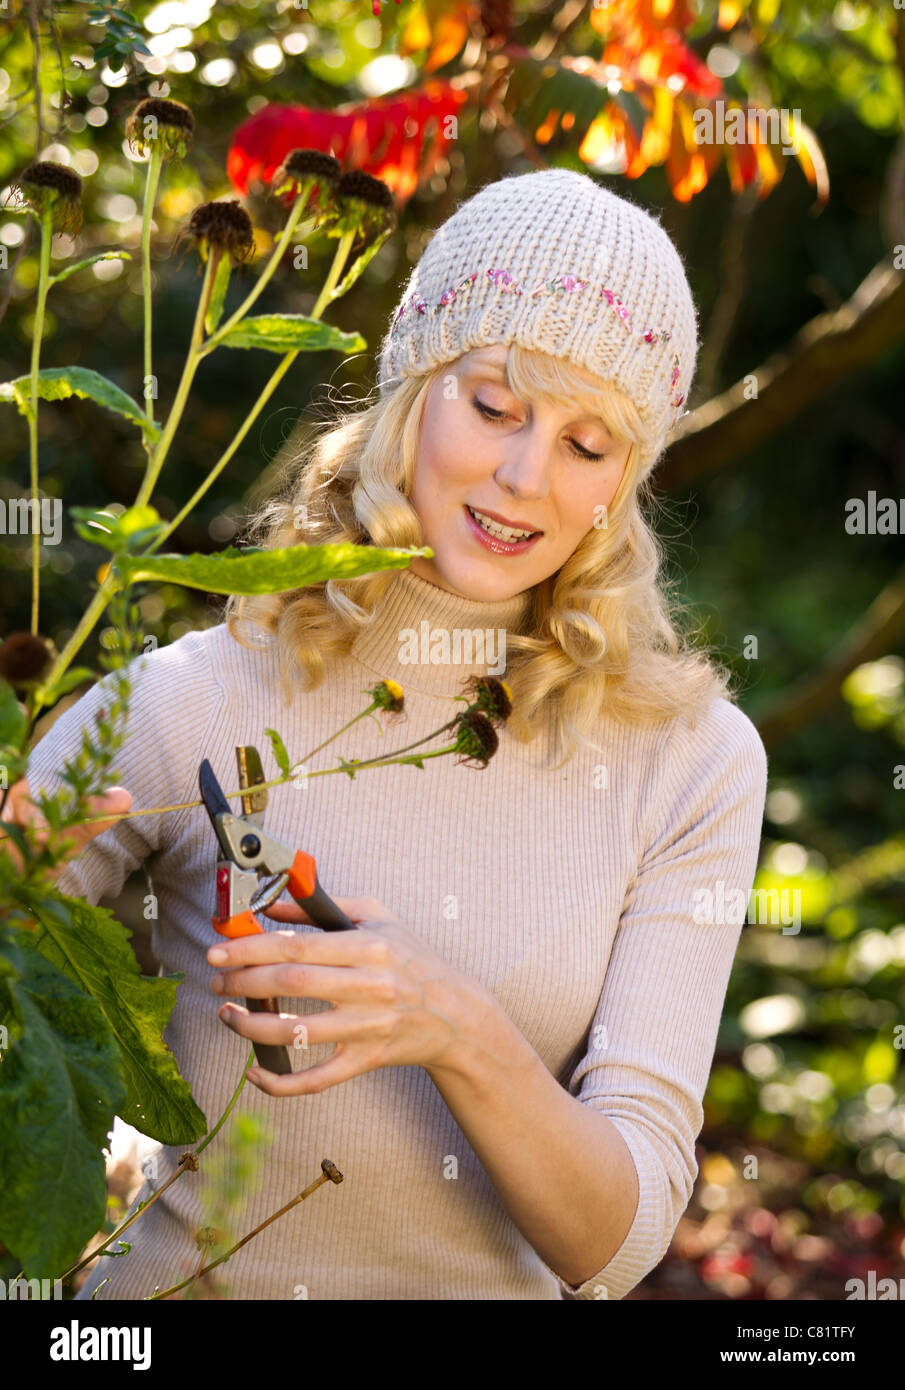 Woman working in Autumn garden - Stock Image